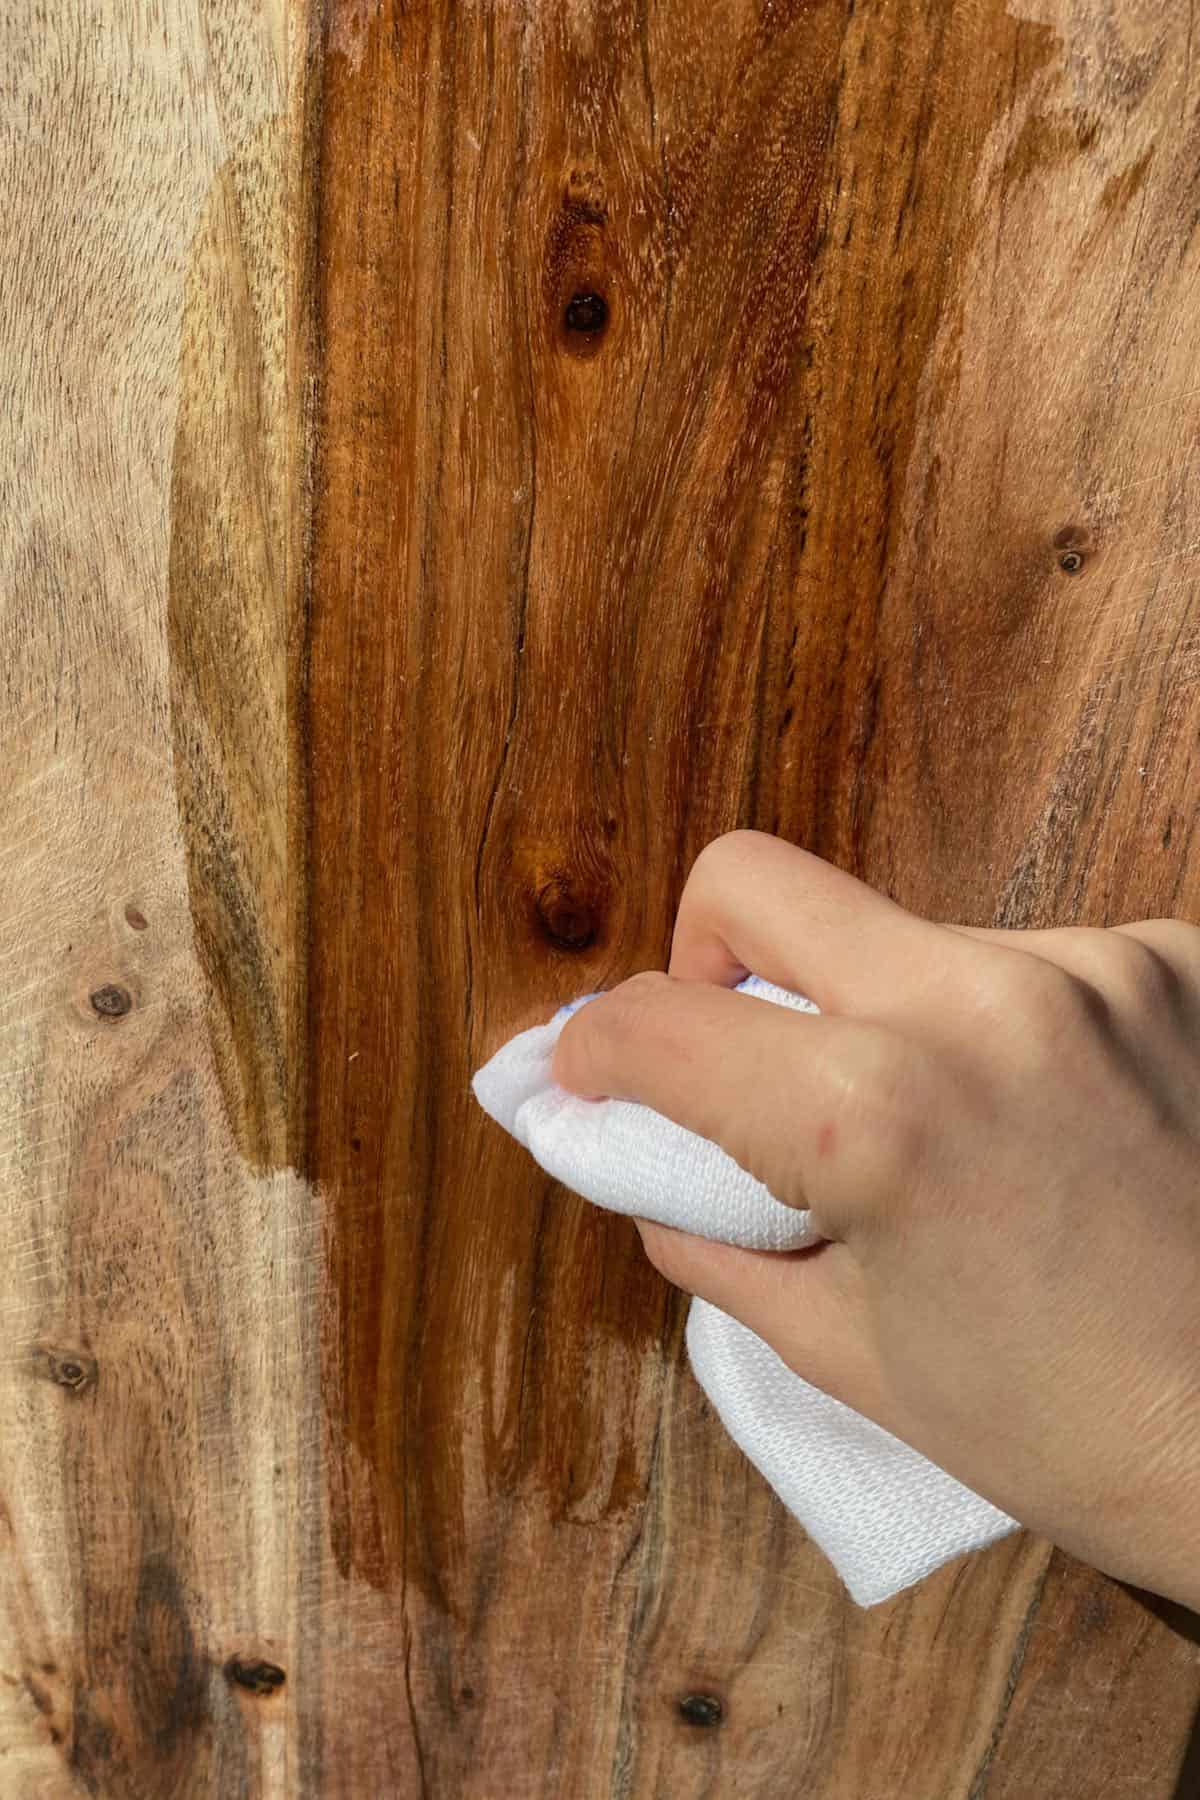 Applying mineral oil on a wooden board